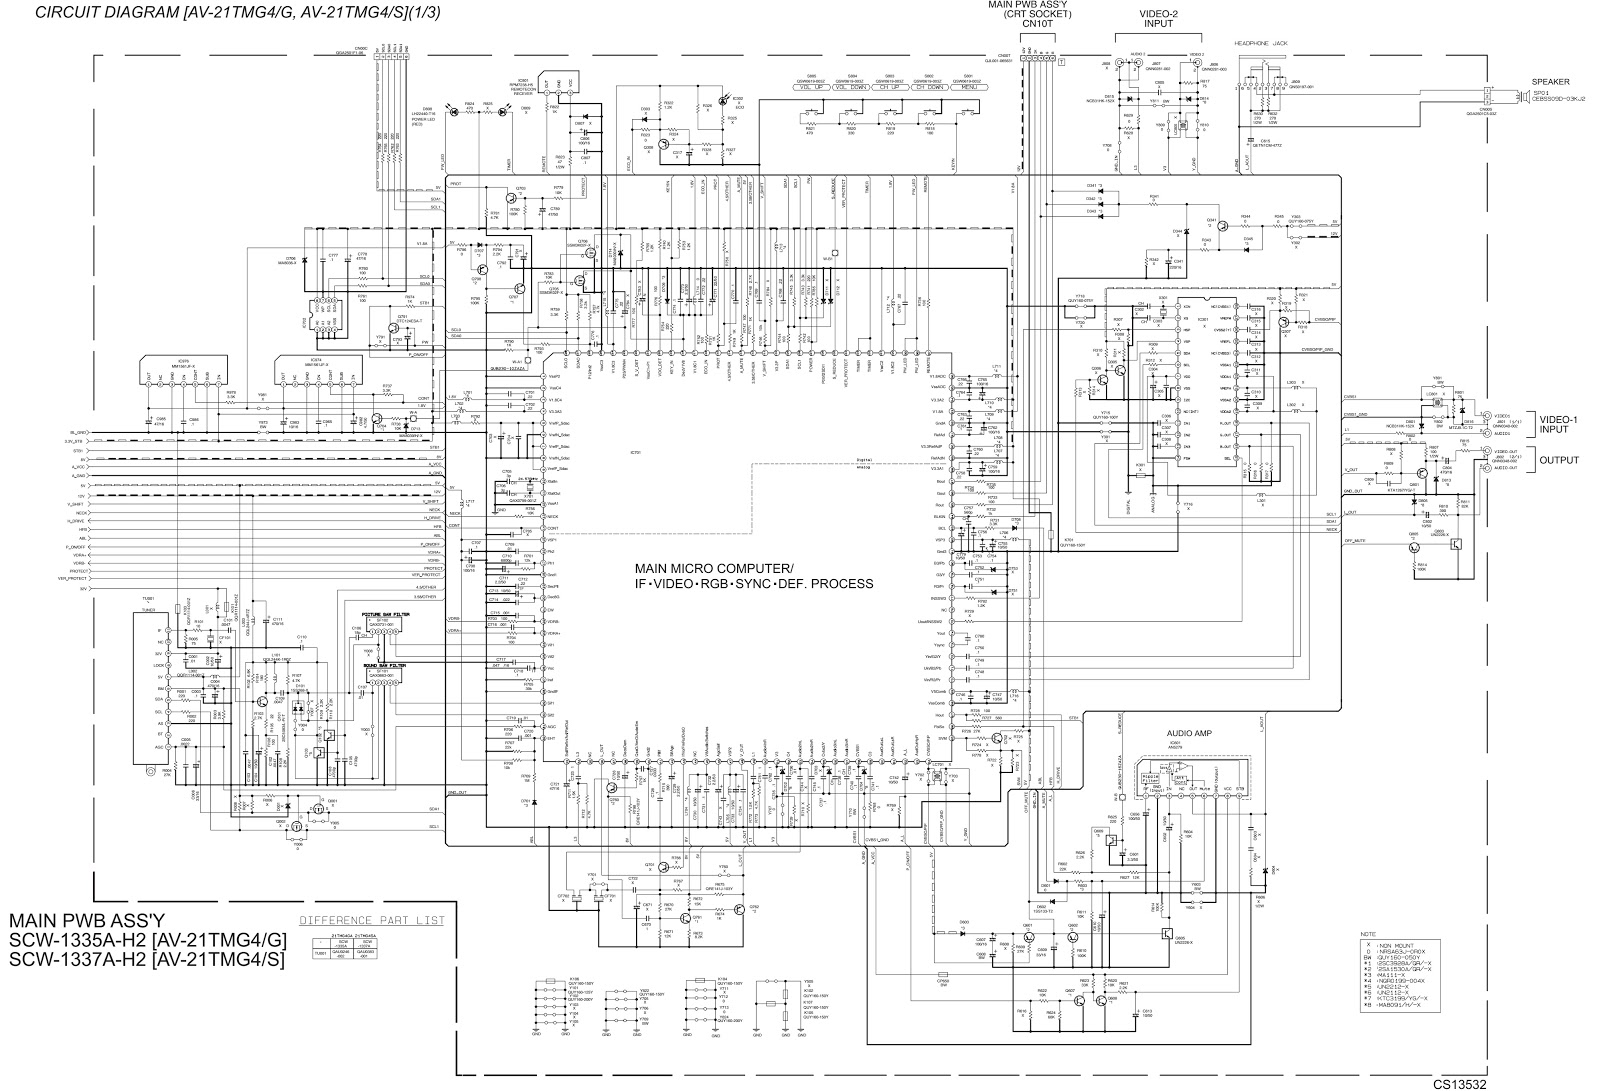 medium resolution of circuit diagram jvc tv the portal and forum of wiring diagram u2022 rh mistelectro com jvc tv circuit diagram jvc tv schematic diagram